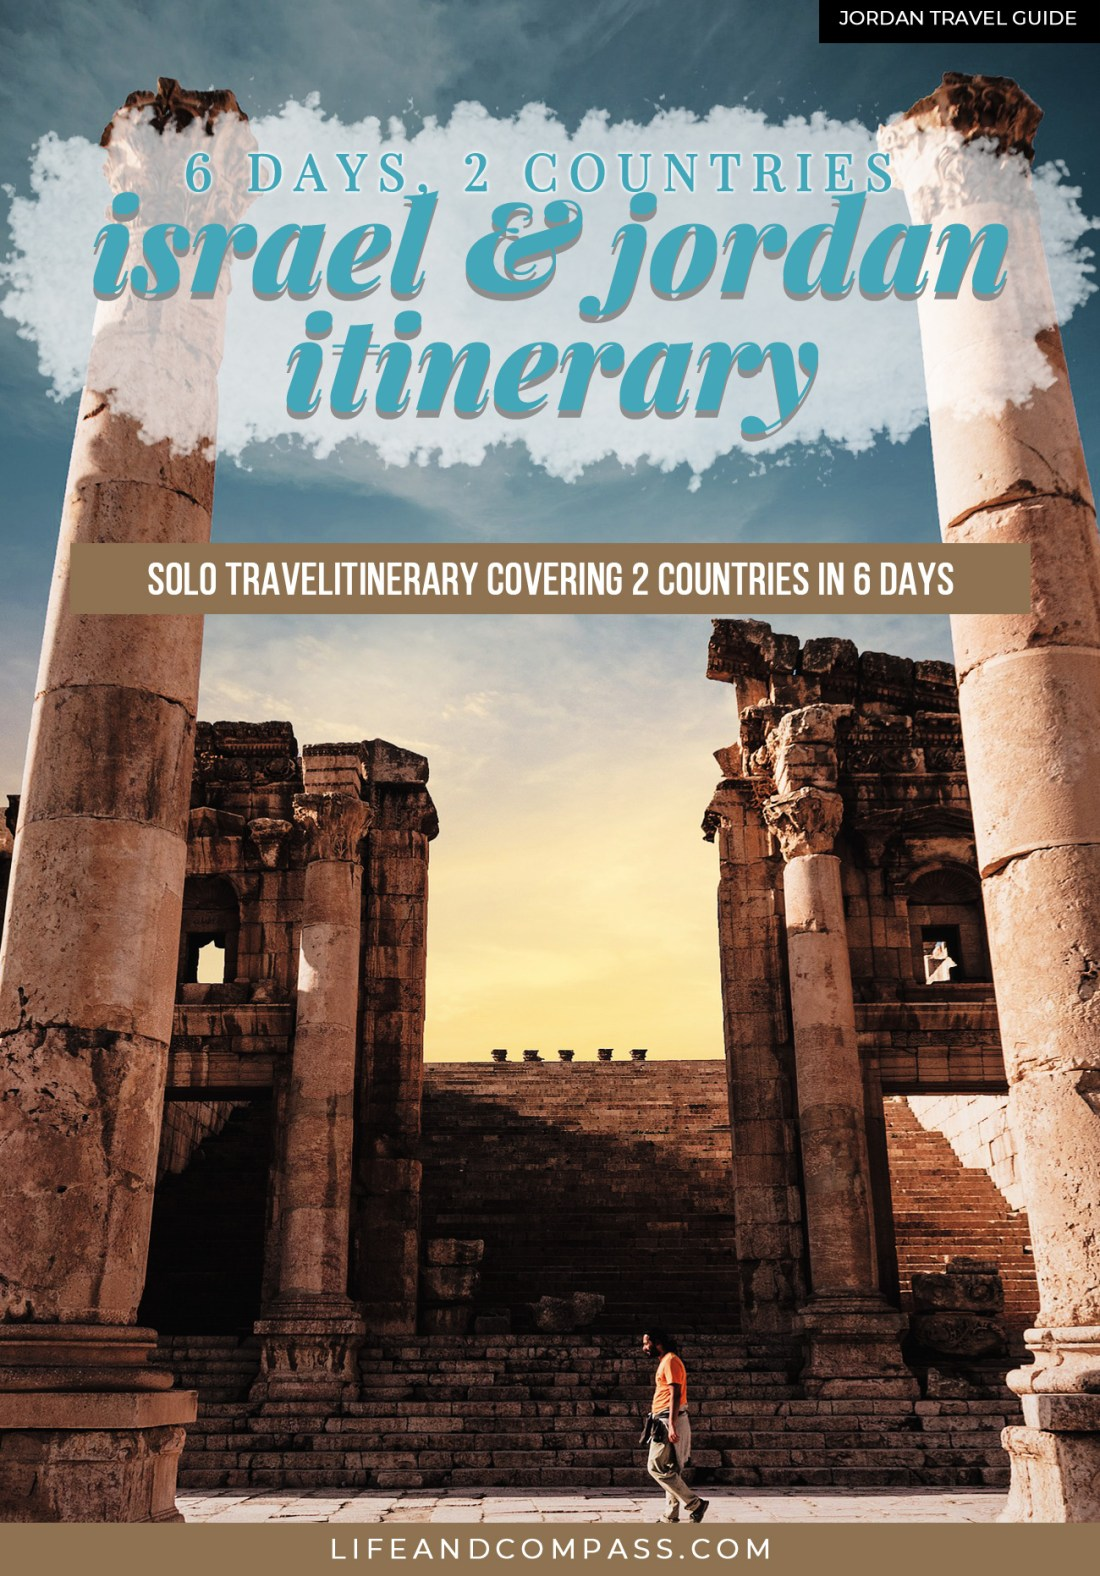 An Israel to Jordan itinerary is common given the country's proximity so here's my Israel to Jordan itinerary: 6 days, and a budget of $1000!